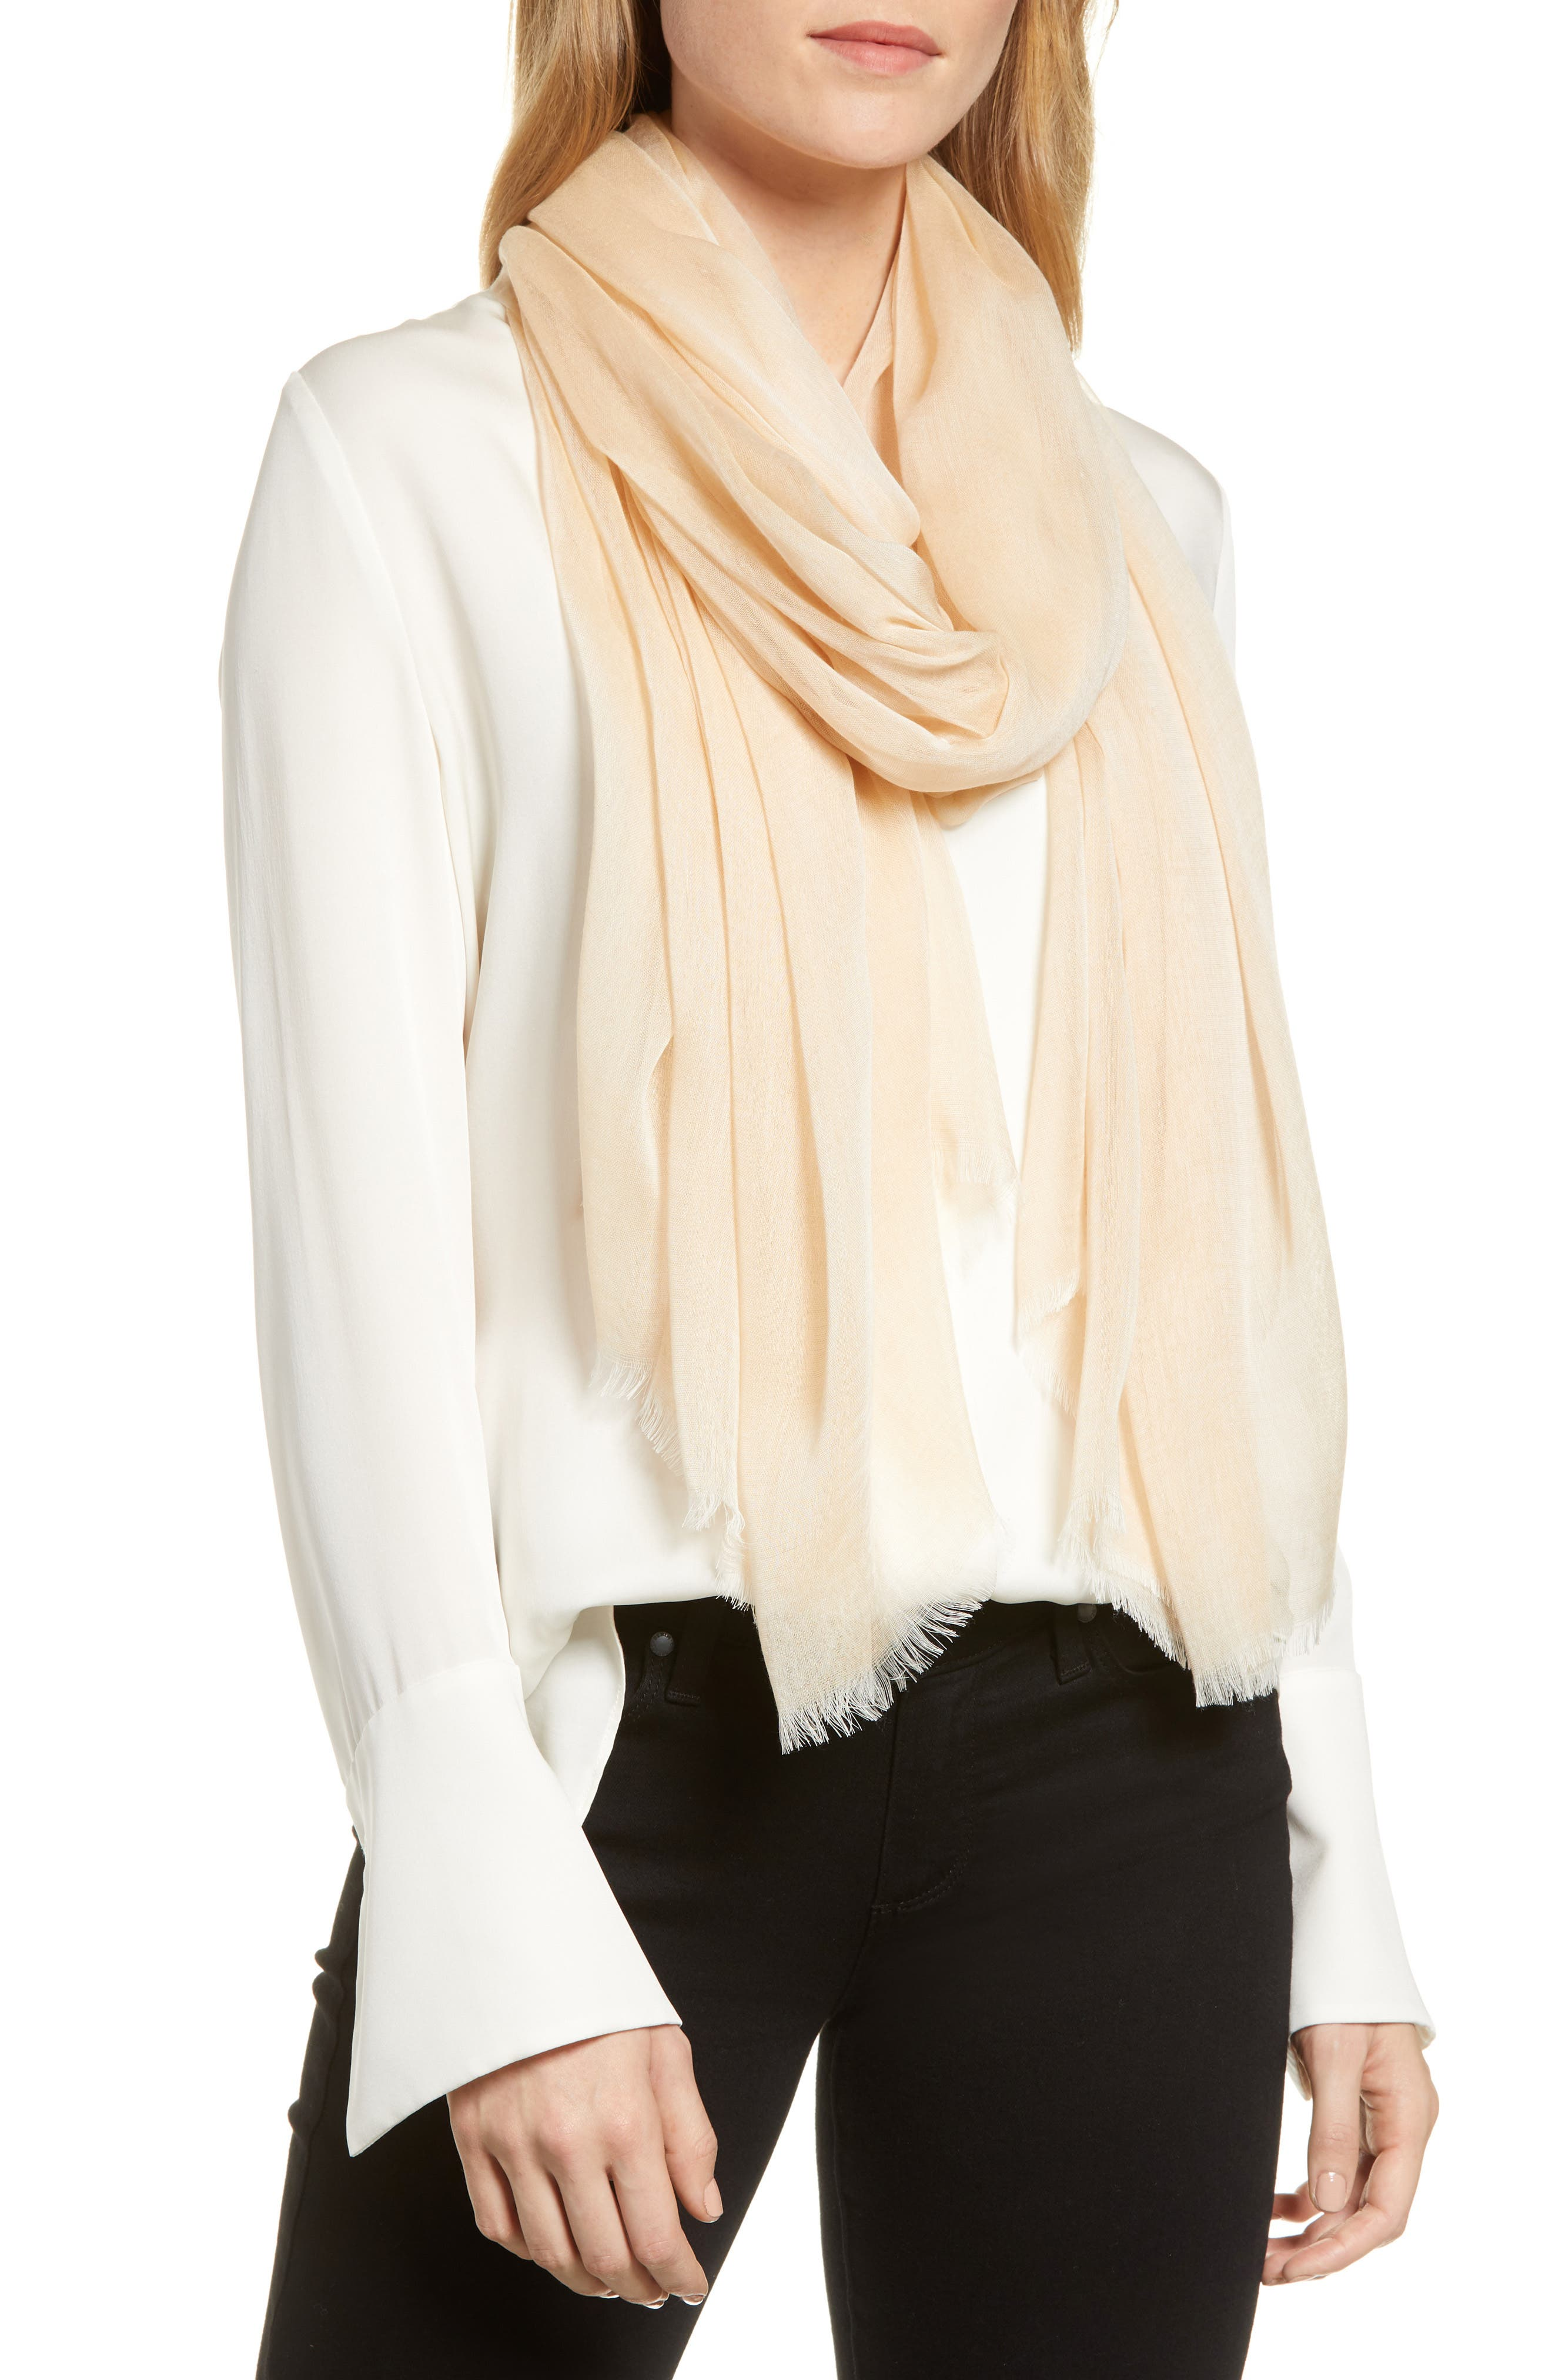 NORDSTROM, Modal Silk Blend Scarf, Main thumbnail 1, color, BEIGE BISCUIT